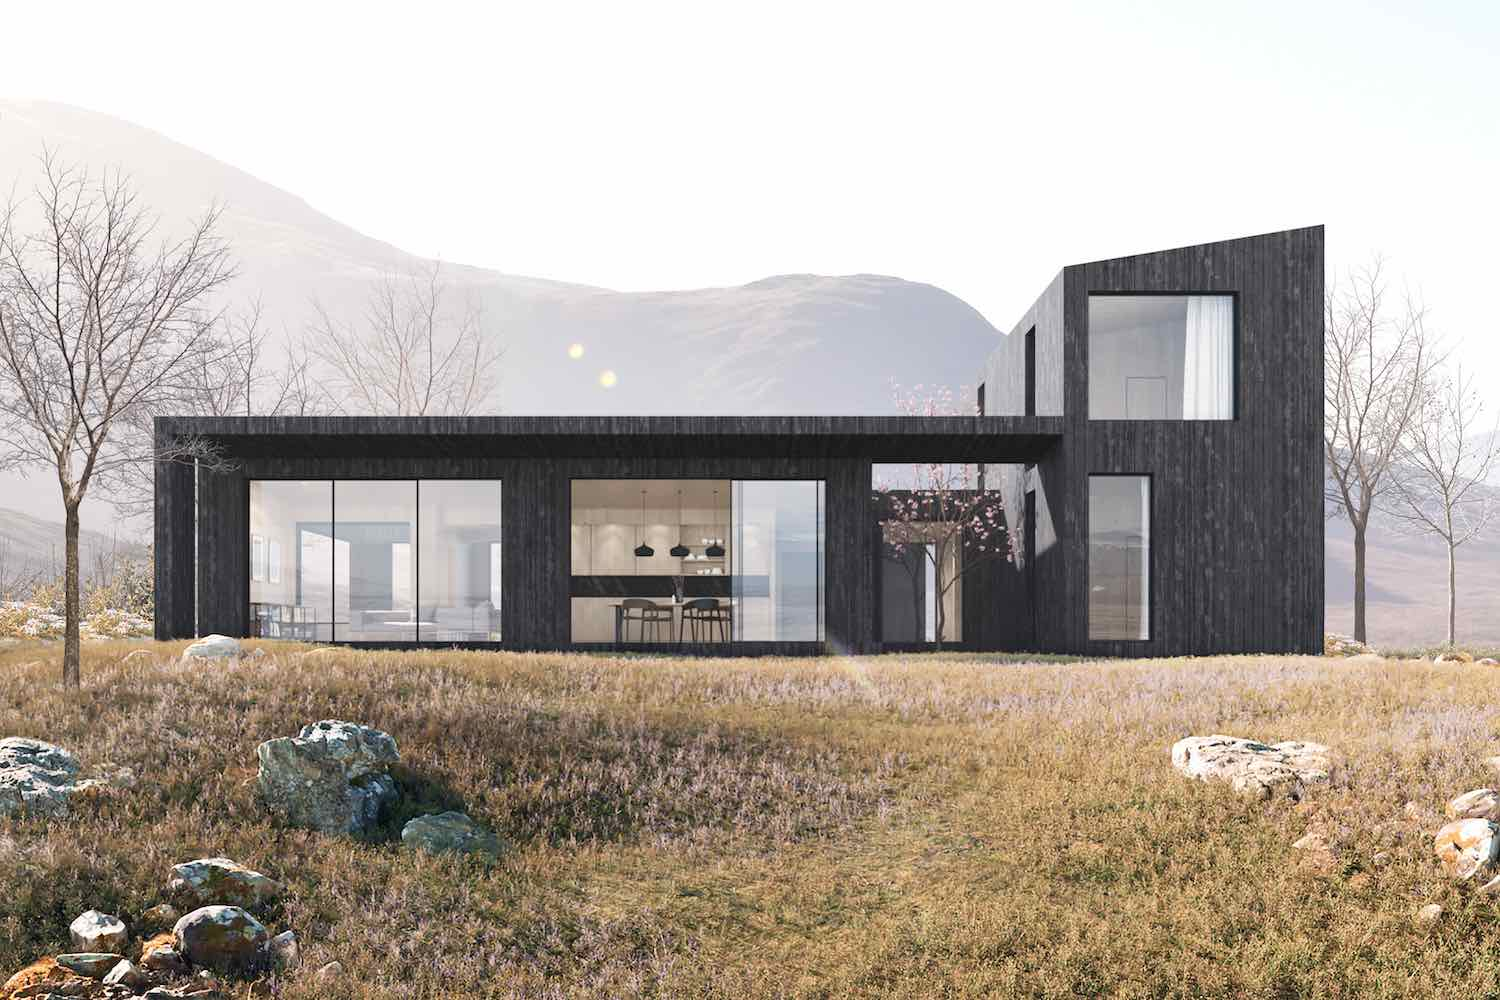 Koto LivingHomes by Plant Prefab and Koto Design. Piha External view - Image by Plant Prefab.